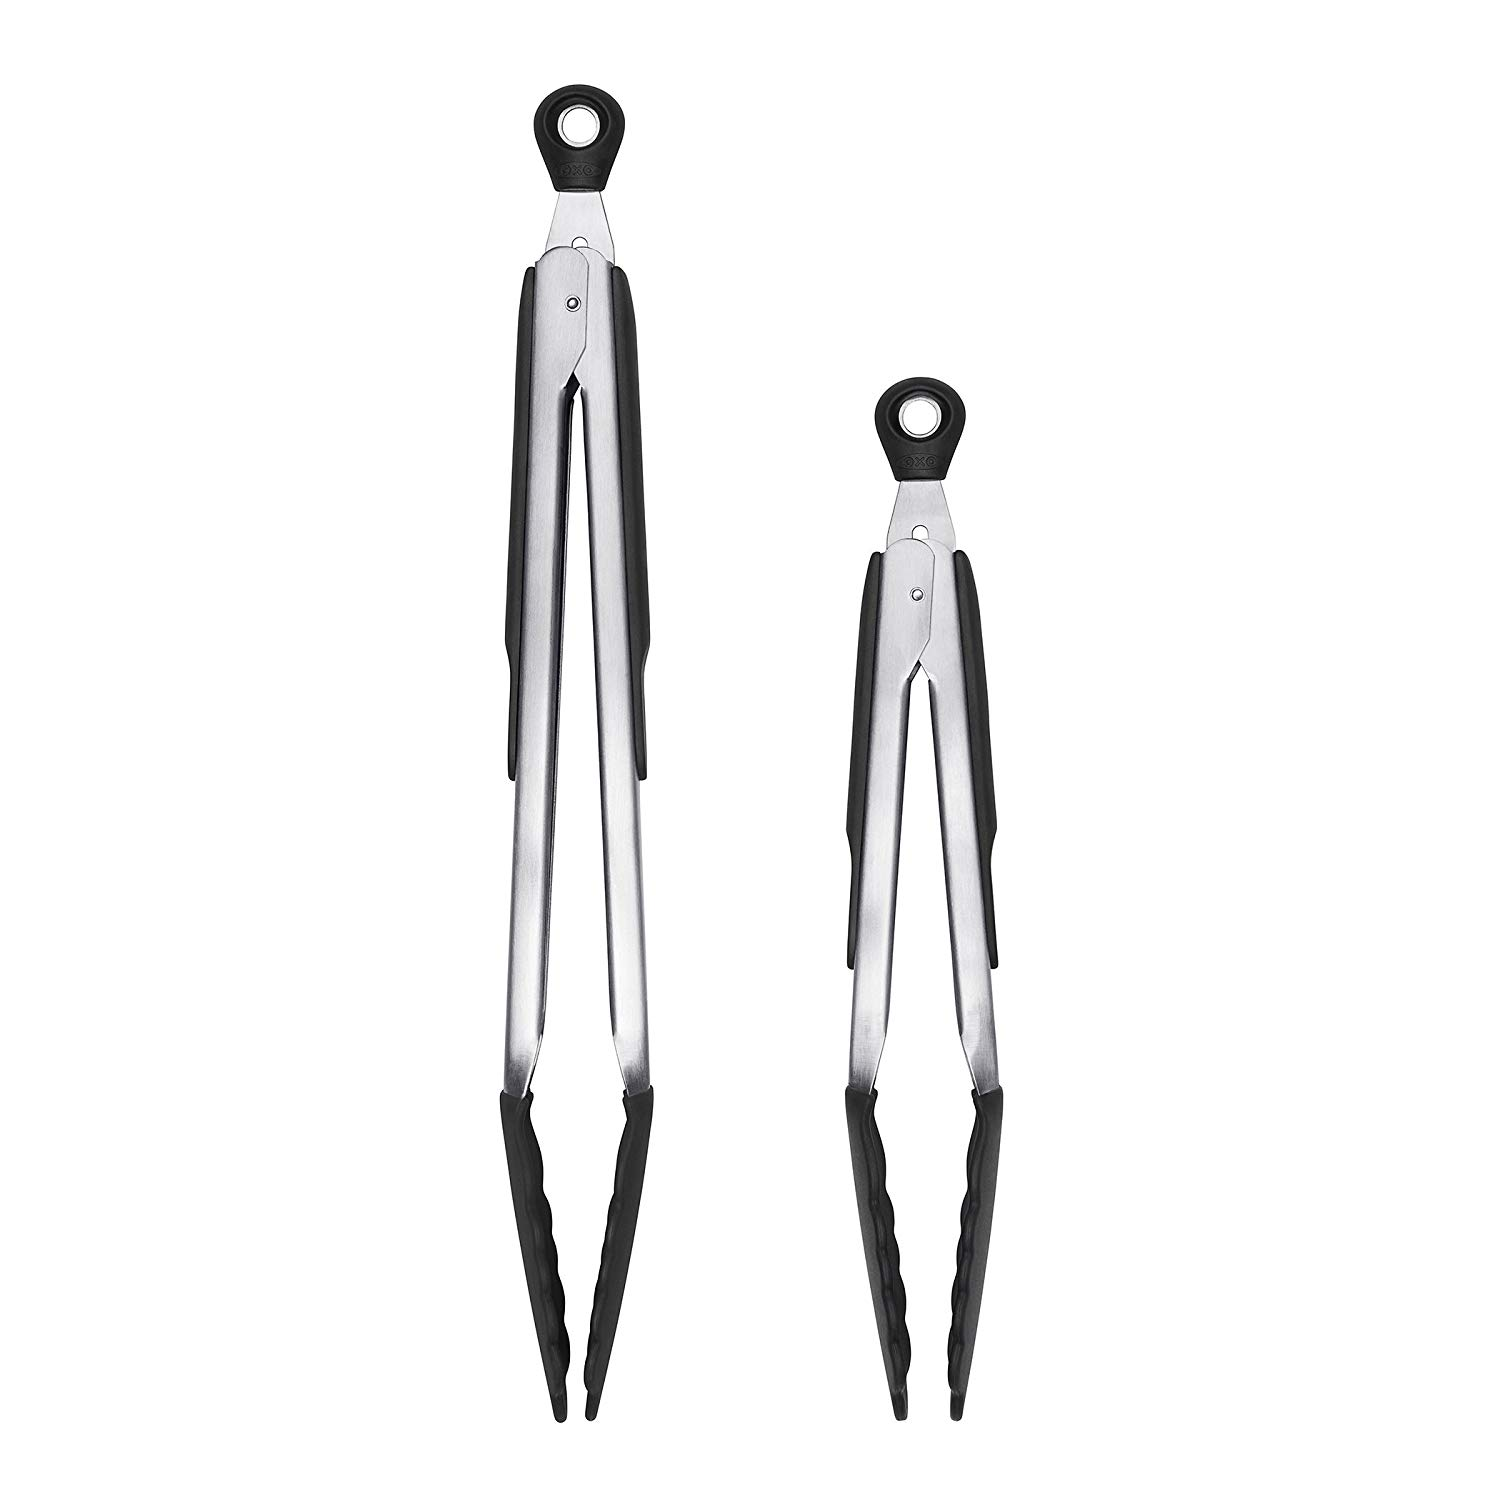 ??oxo 1101880 good grips 9-inch tongs with silicone heads